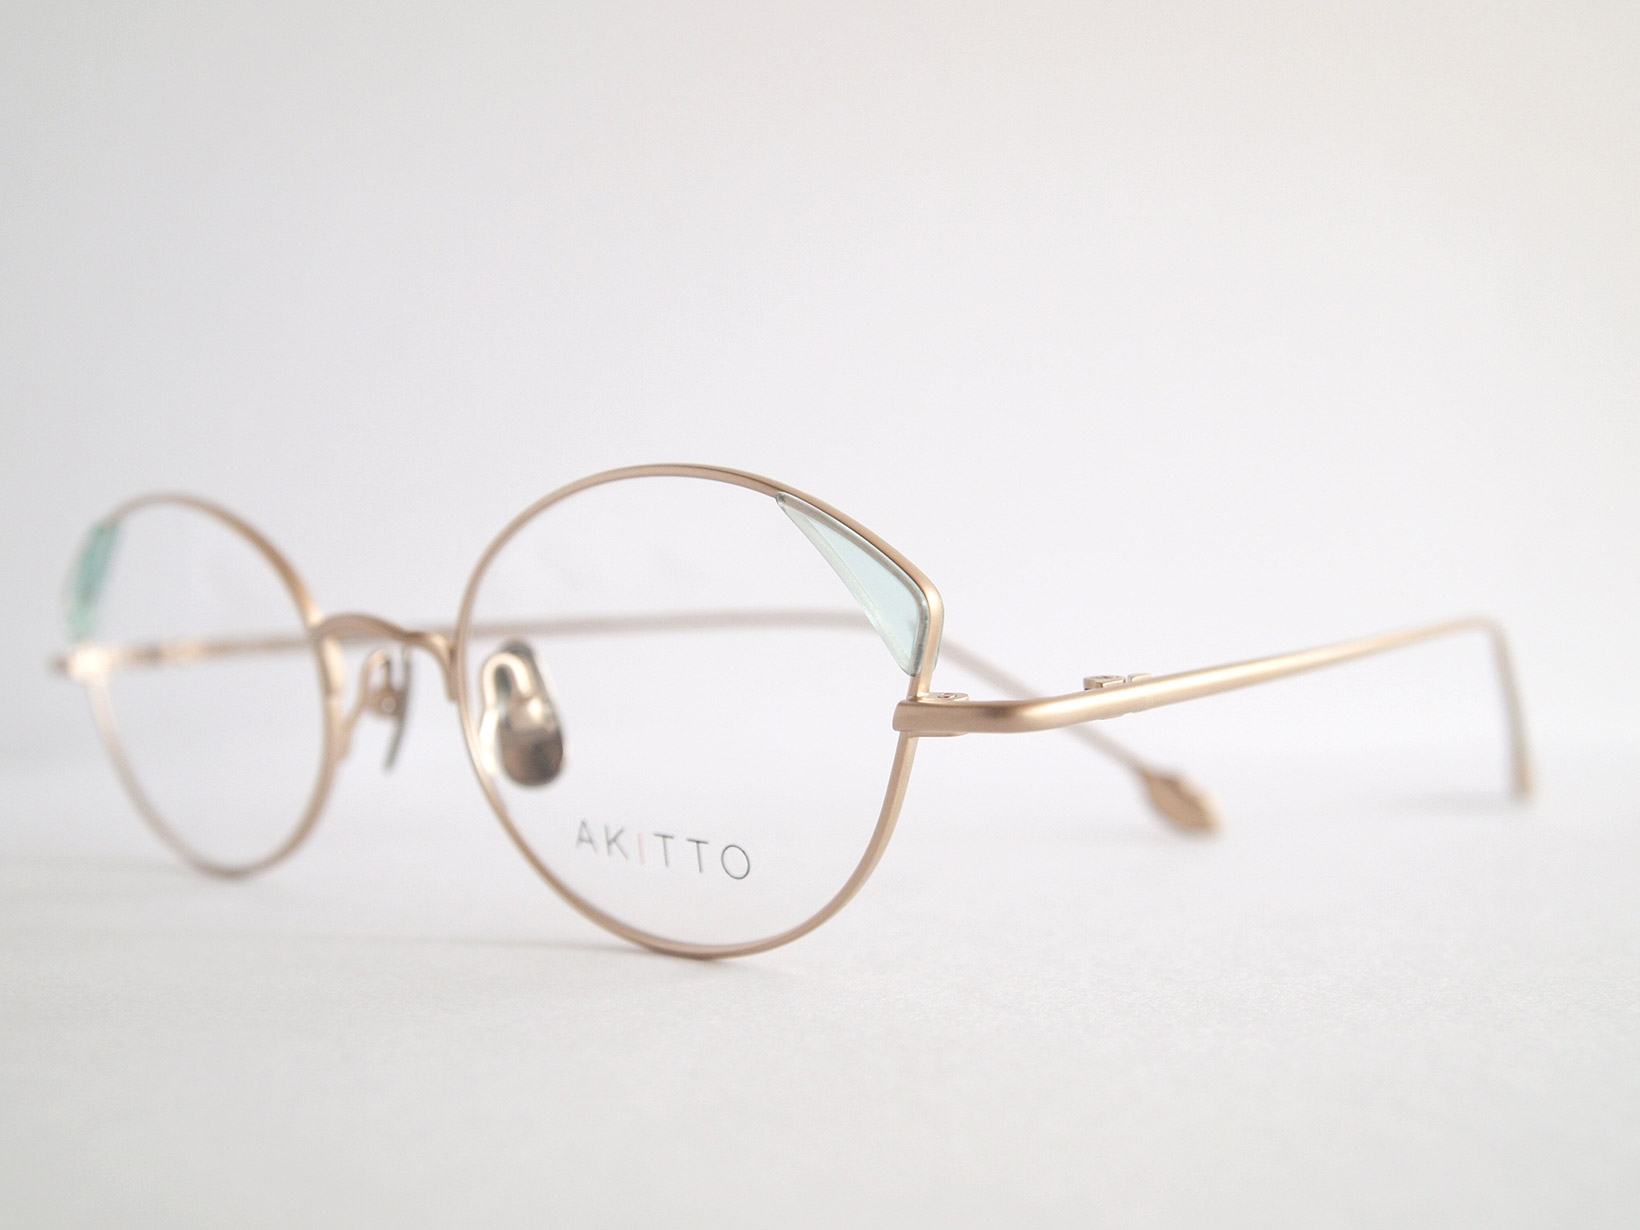 AKITTO 2018-4th pin4 color|BL size:47□19 material:titanium+acetate price:¥42,000-(+tax)